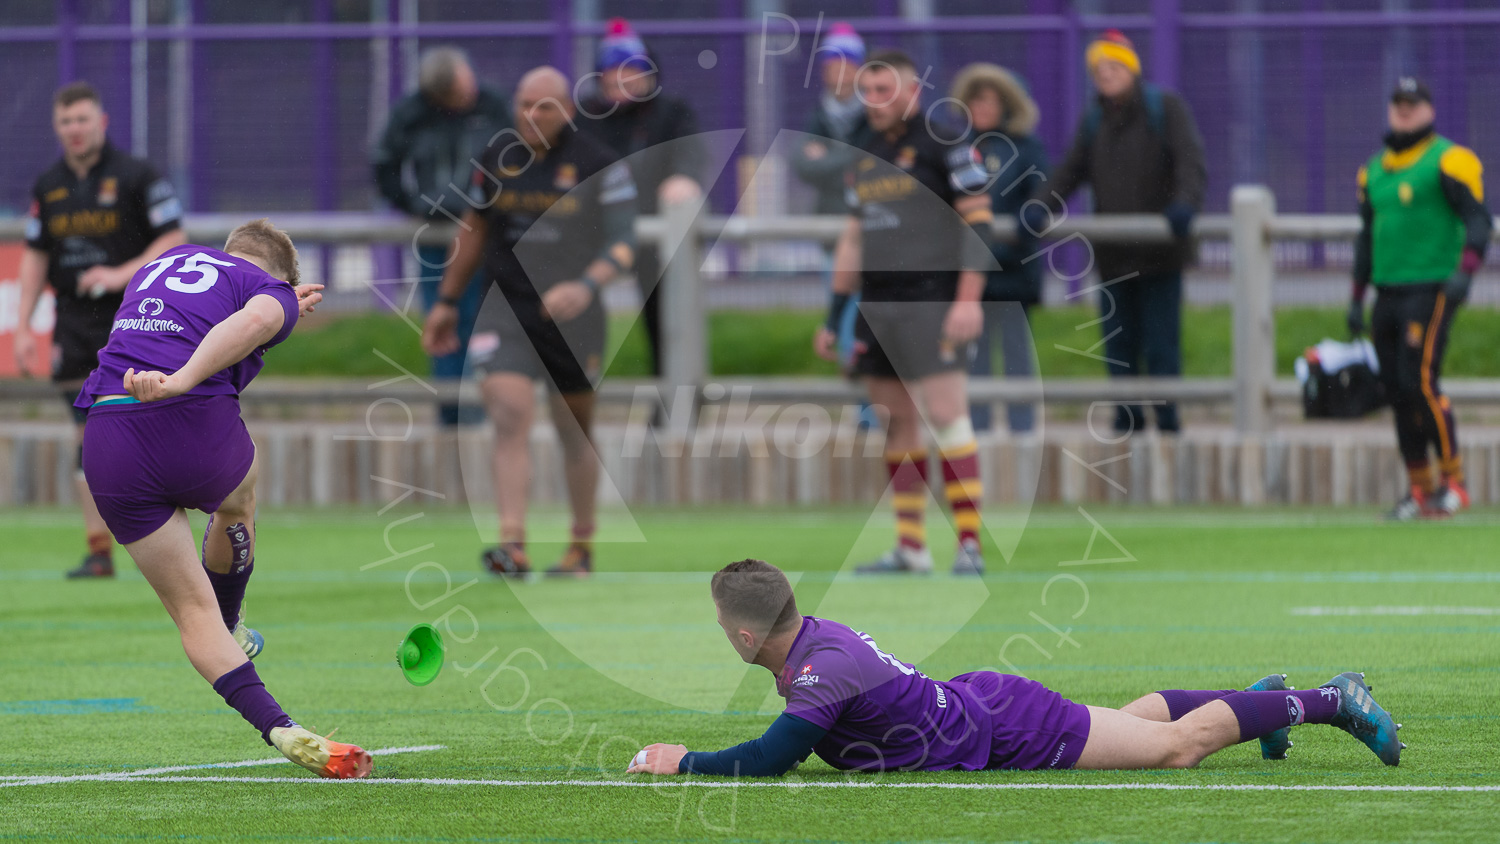 20190427 Loughborough vs Ampthill 1st XV #6324